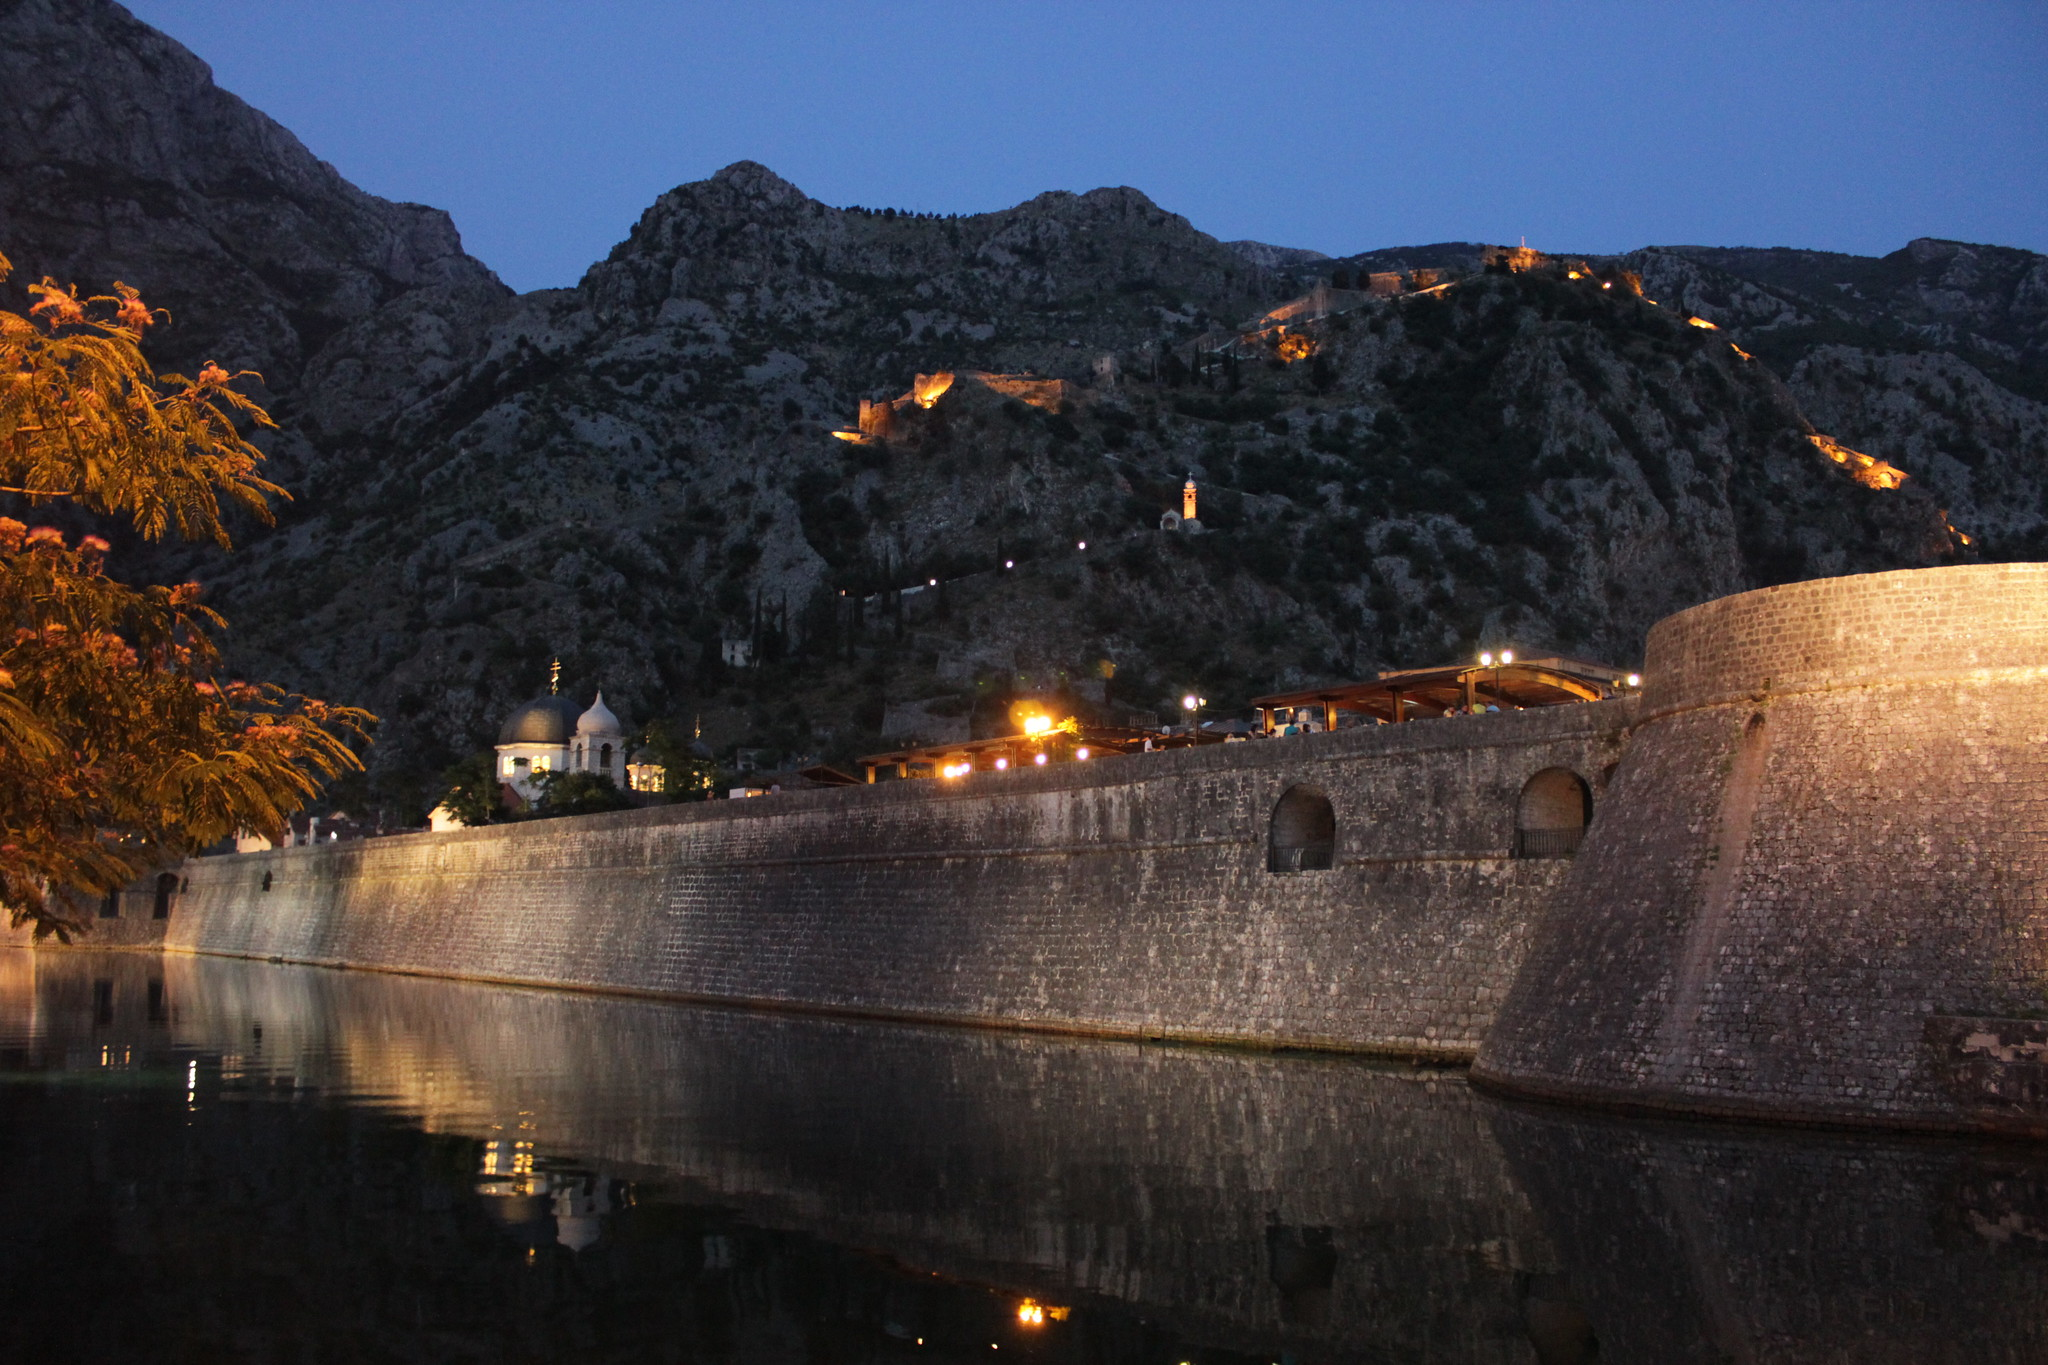 The Town Walls in the night-time